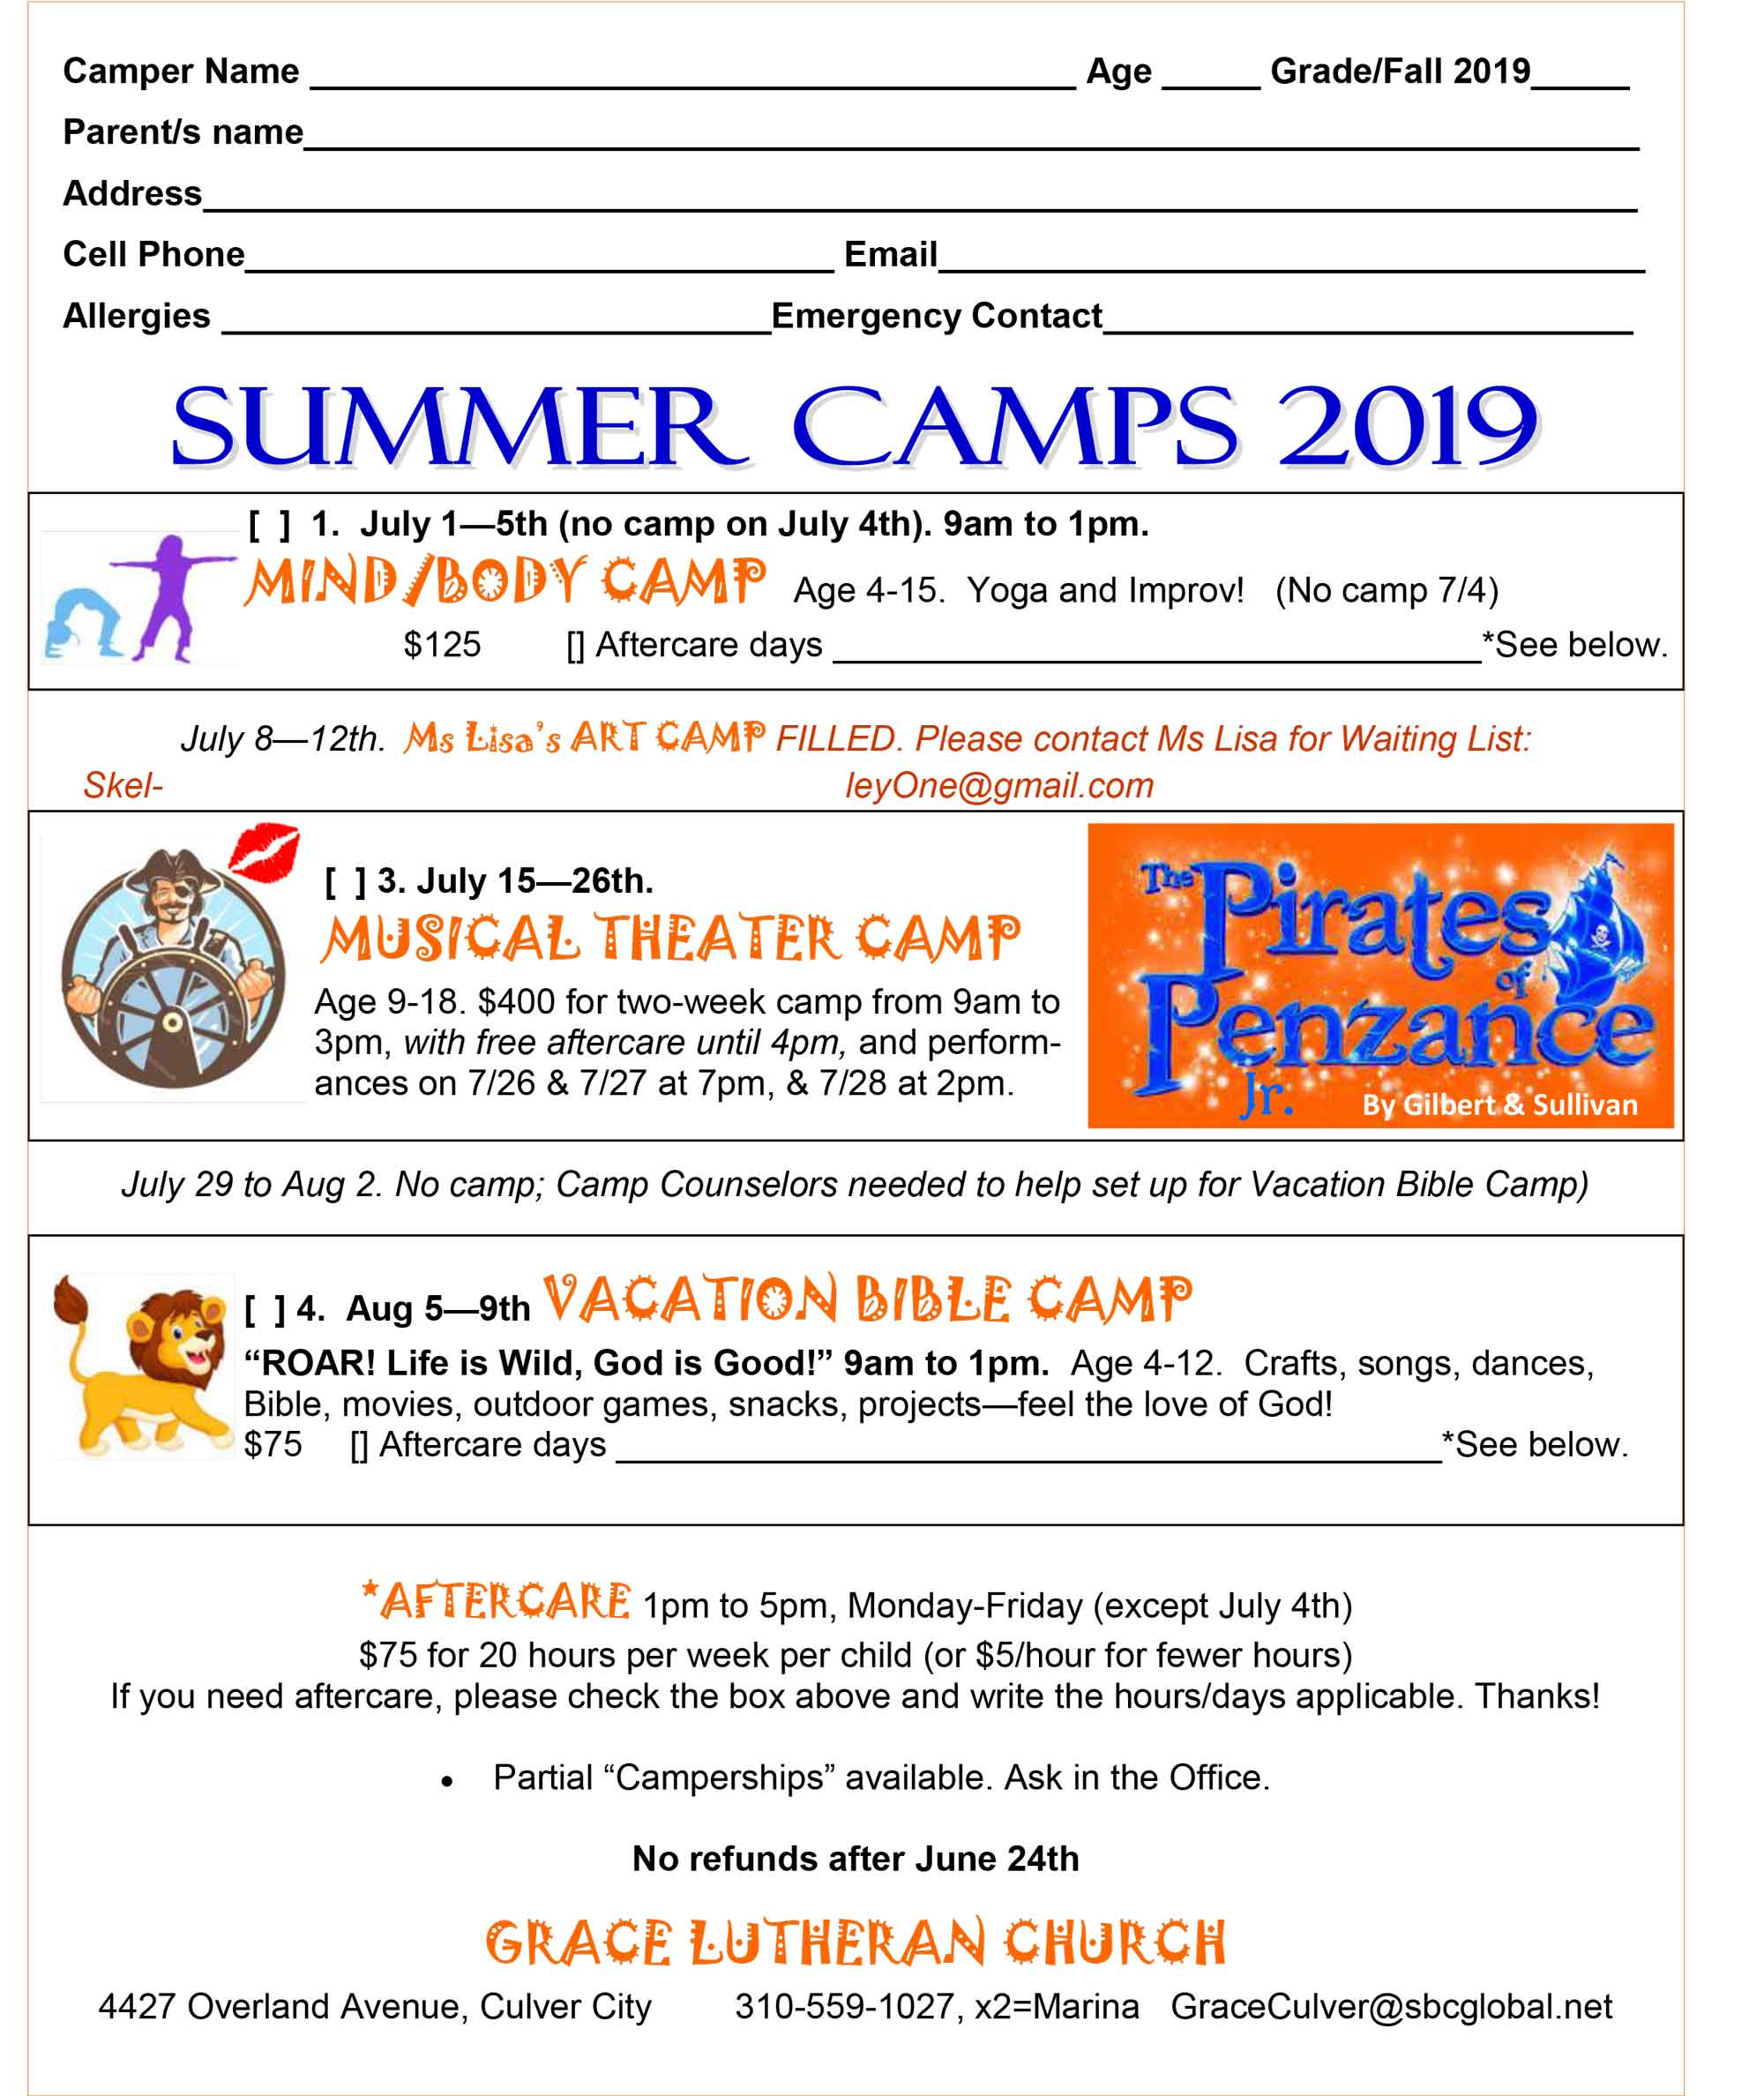 2019-Registration-culver-church-site-jpeg